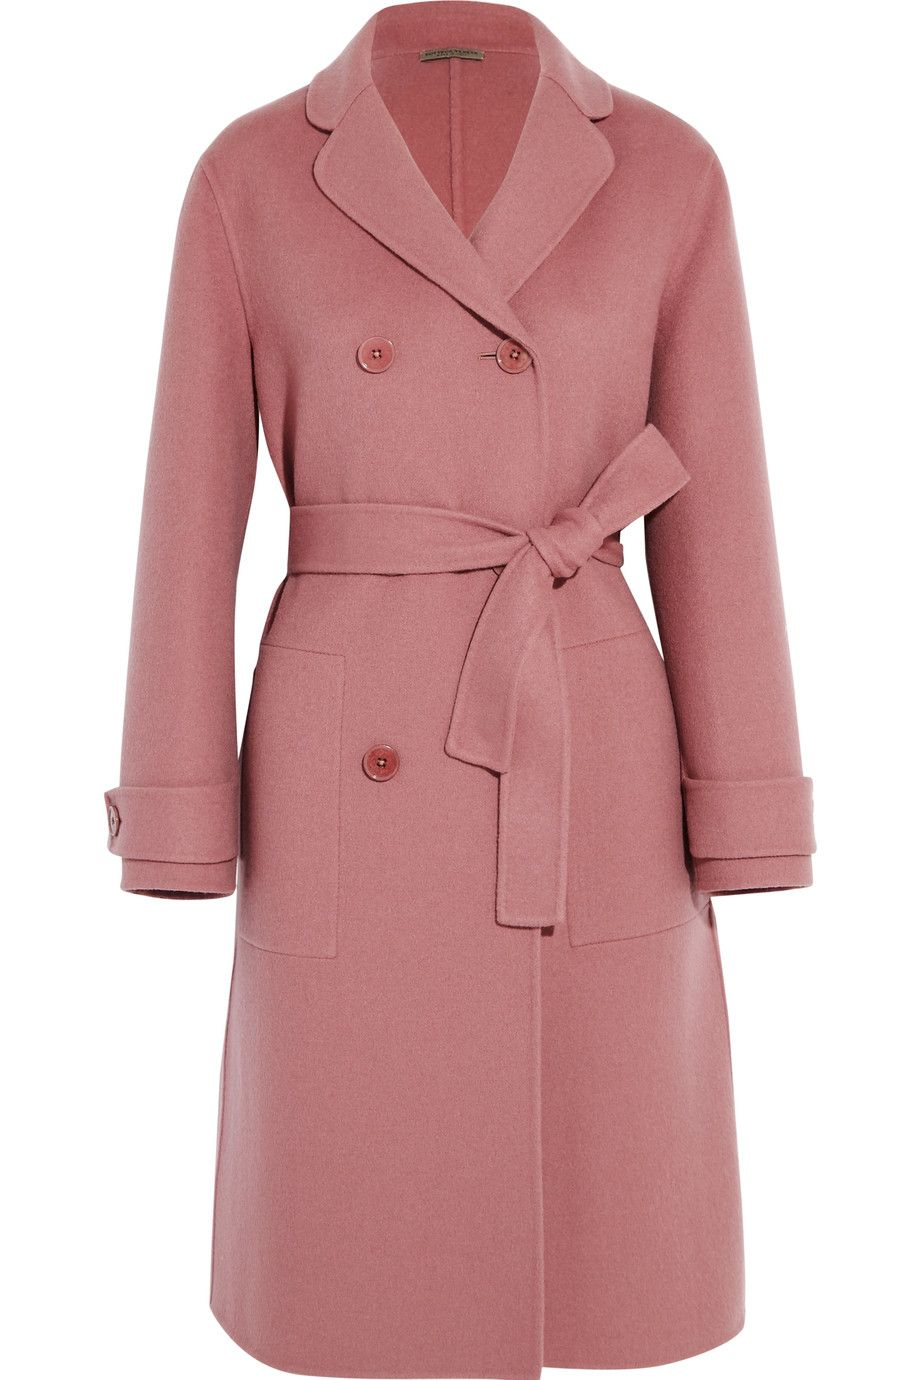 Pink dress with pink jacket  Pin by Anna Bogucki on Bottega Veneta  Pinterest  Bottega veneta